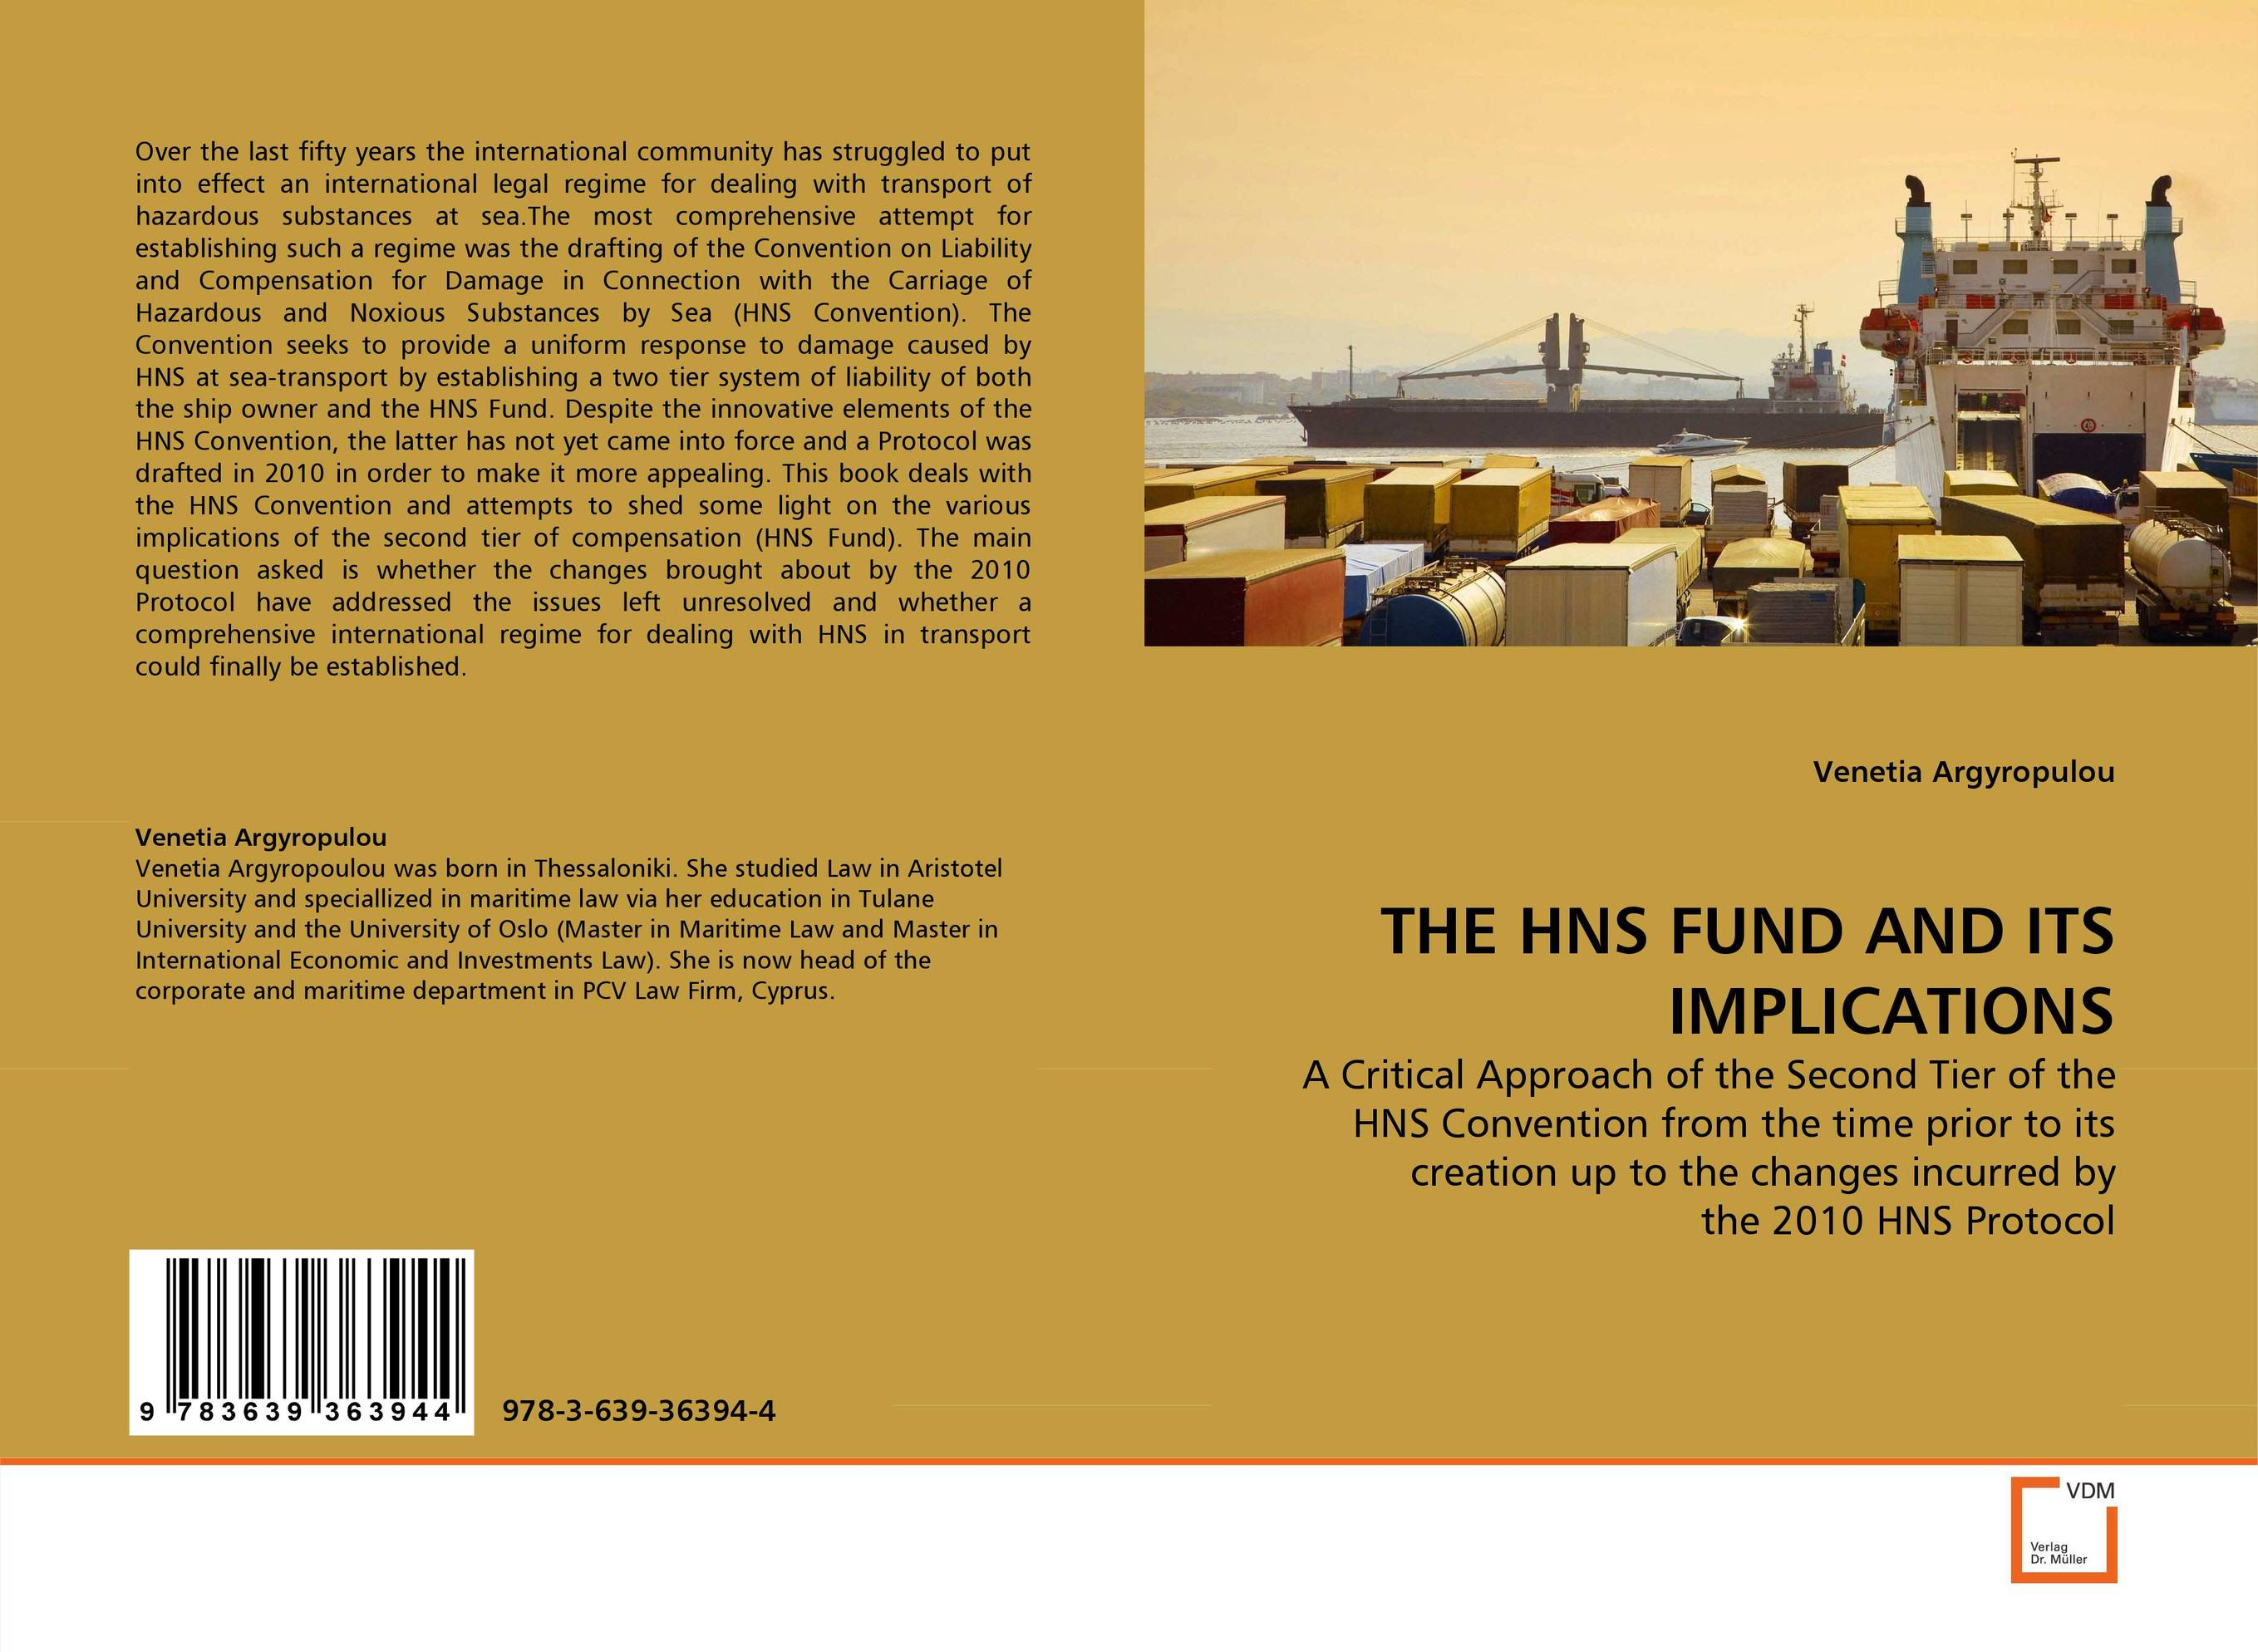 THE HNS FUND AND ITS IMPLICATIONS emerging challenges in the implementation of the oprc hns protocol